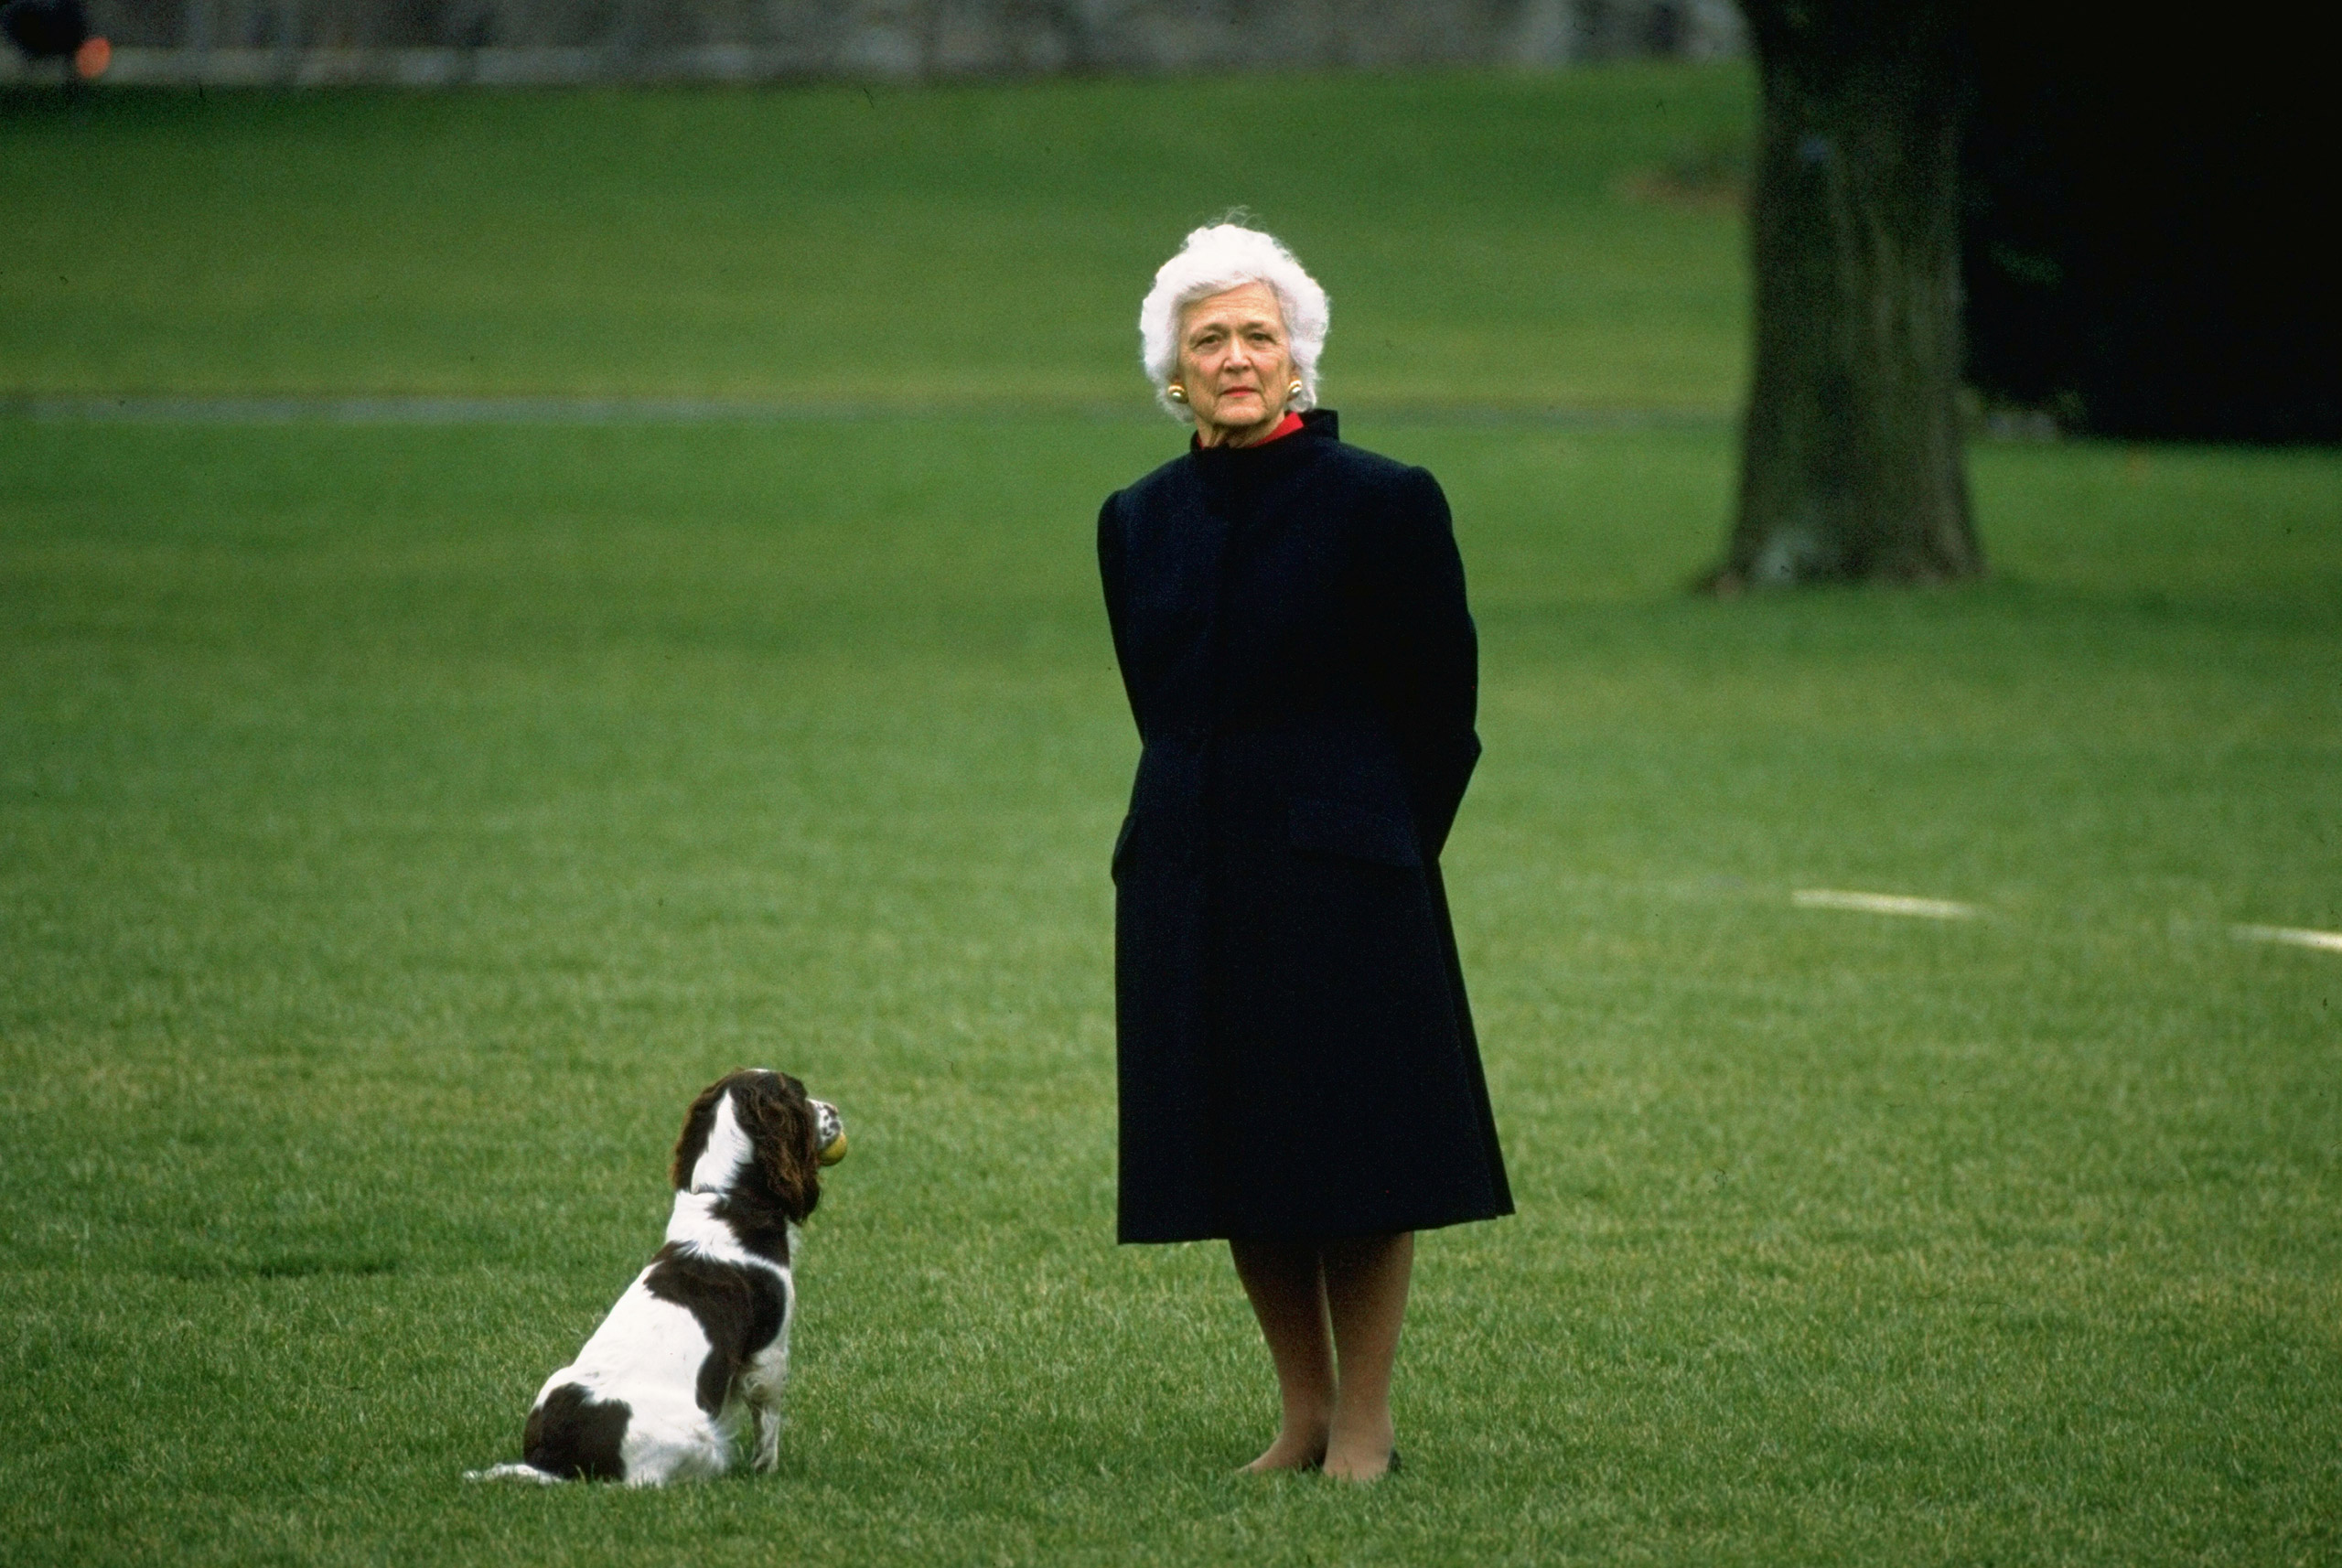 Barbara Bush with family dog Millie, on the White House lawn waiting for President Bush, 1989.